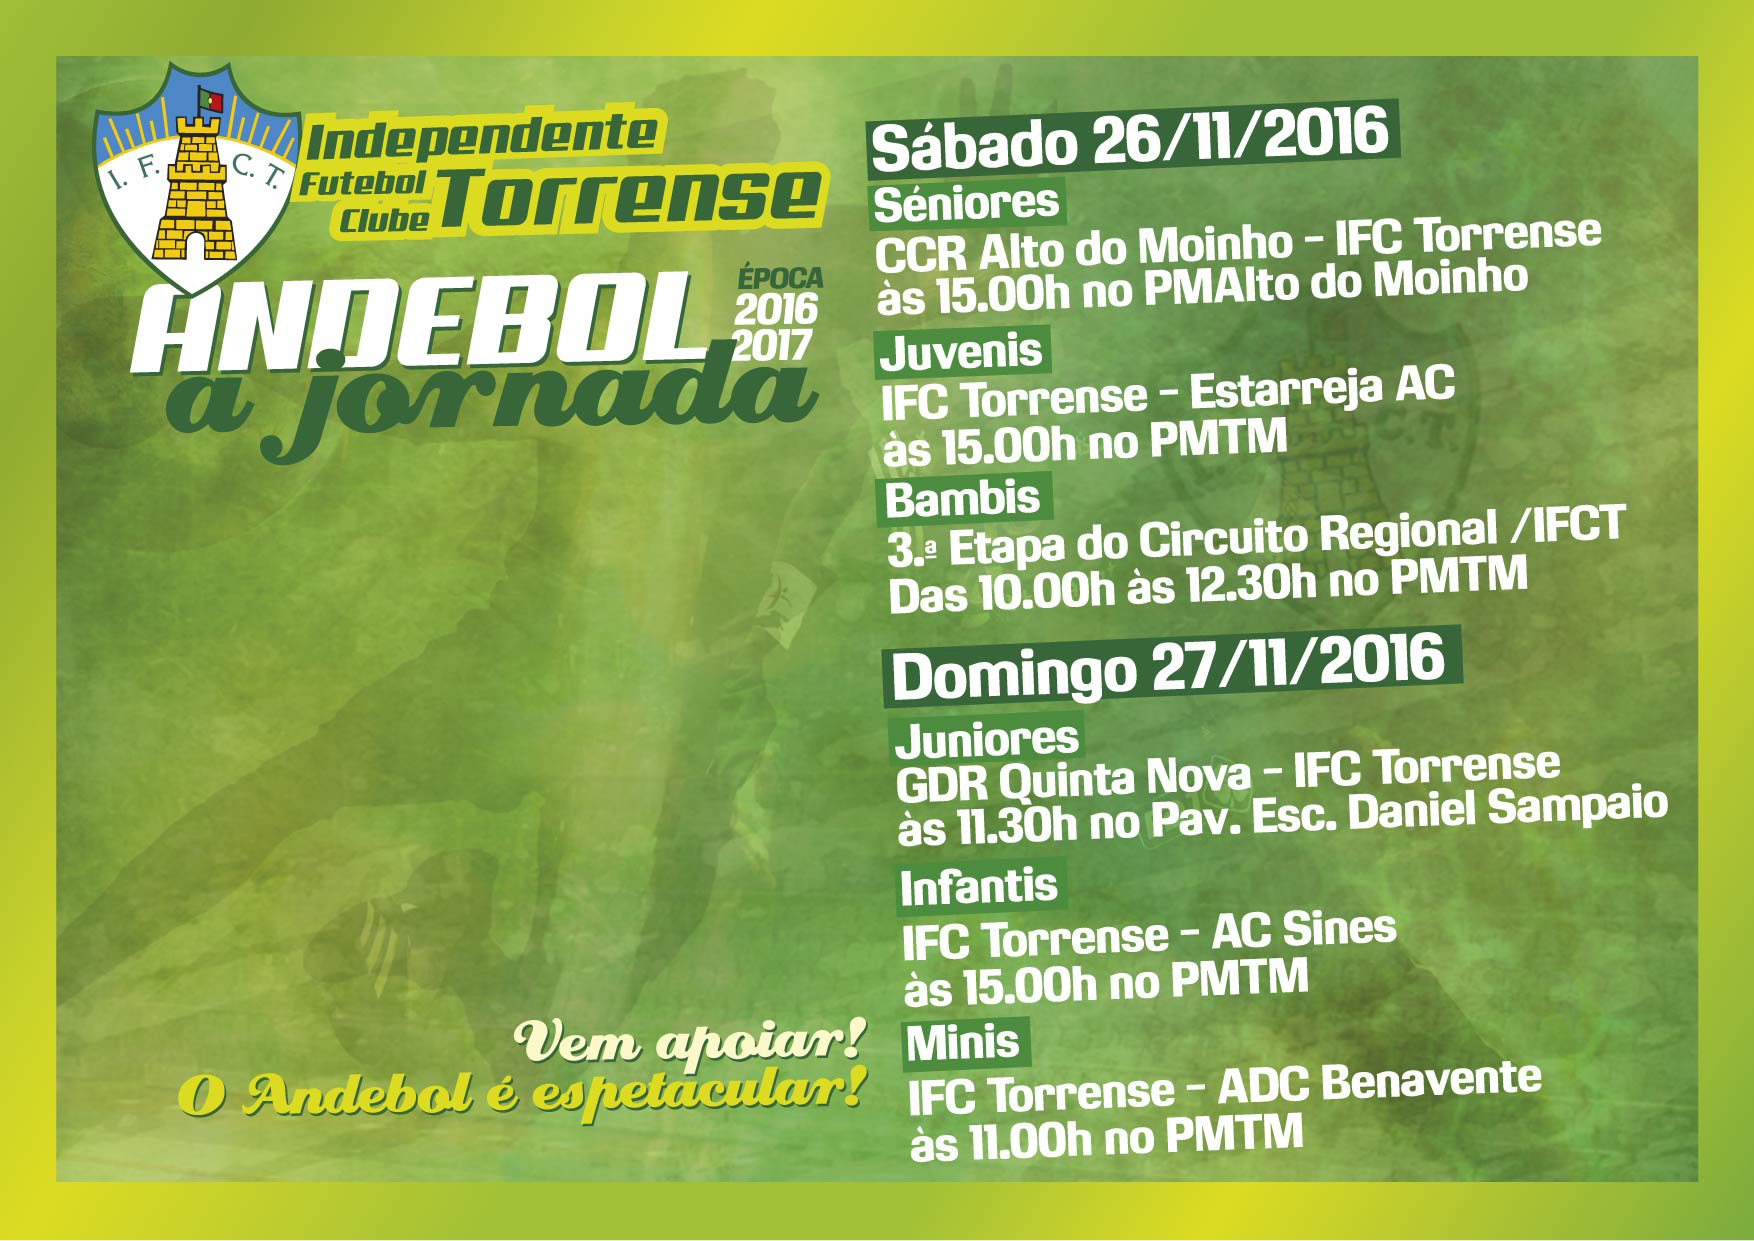 andebol 26e27nov2016